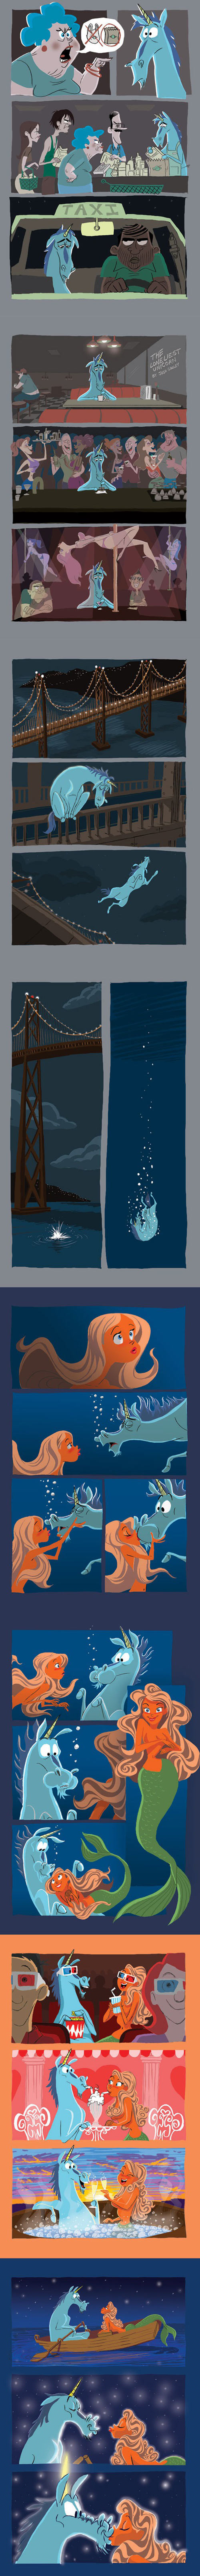 The Loneliest Unicorn by Josh Cooley